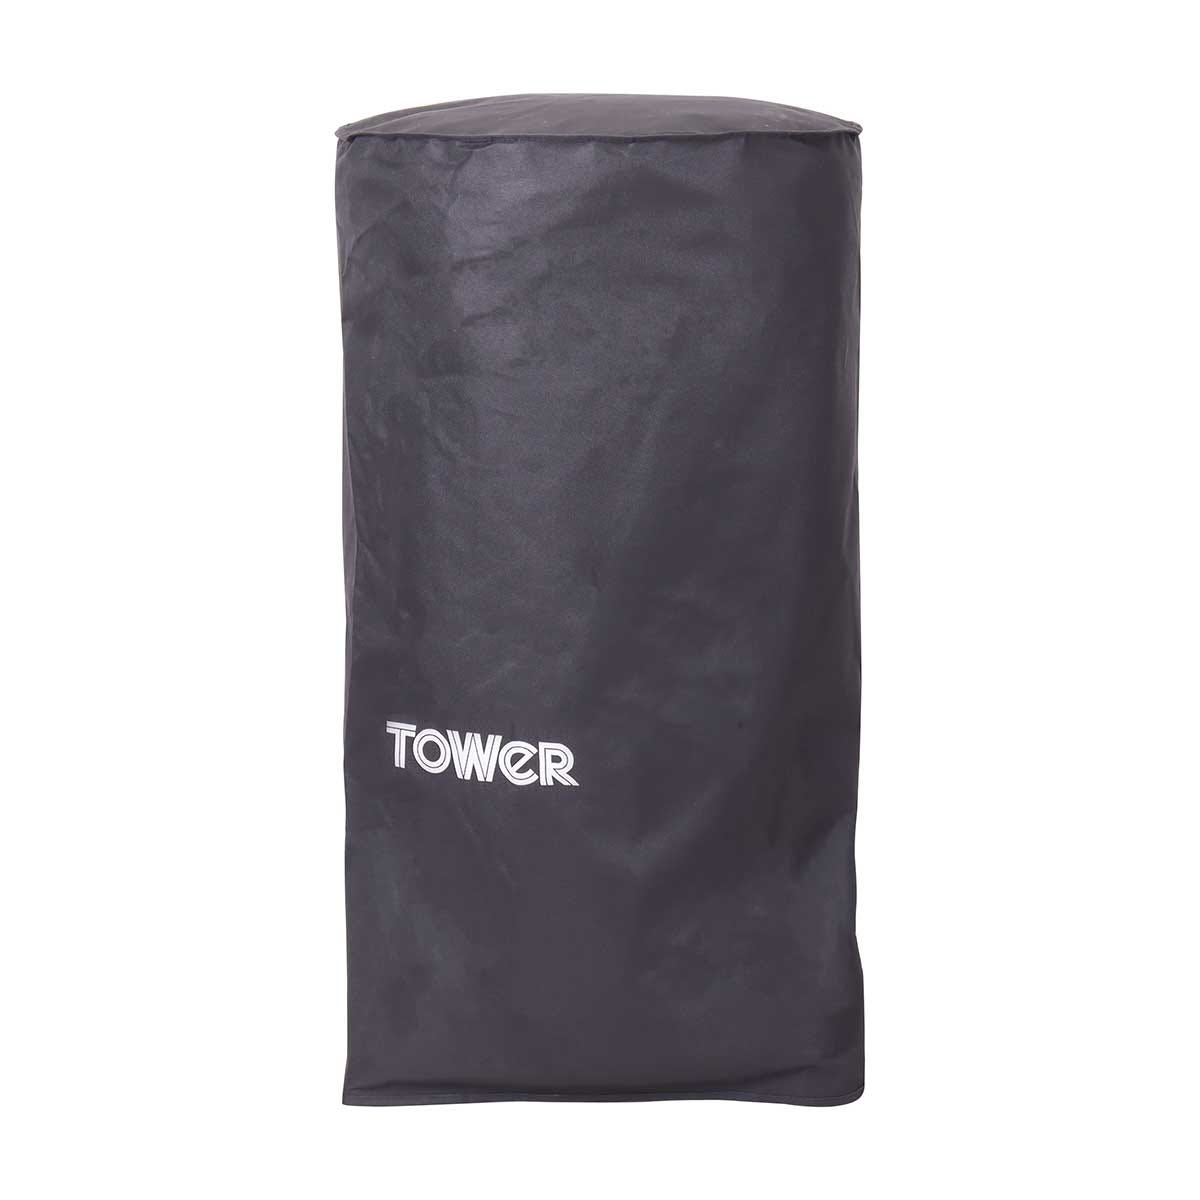 Tower 2-in-1 BBQ Smoker Grill Cover